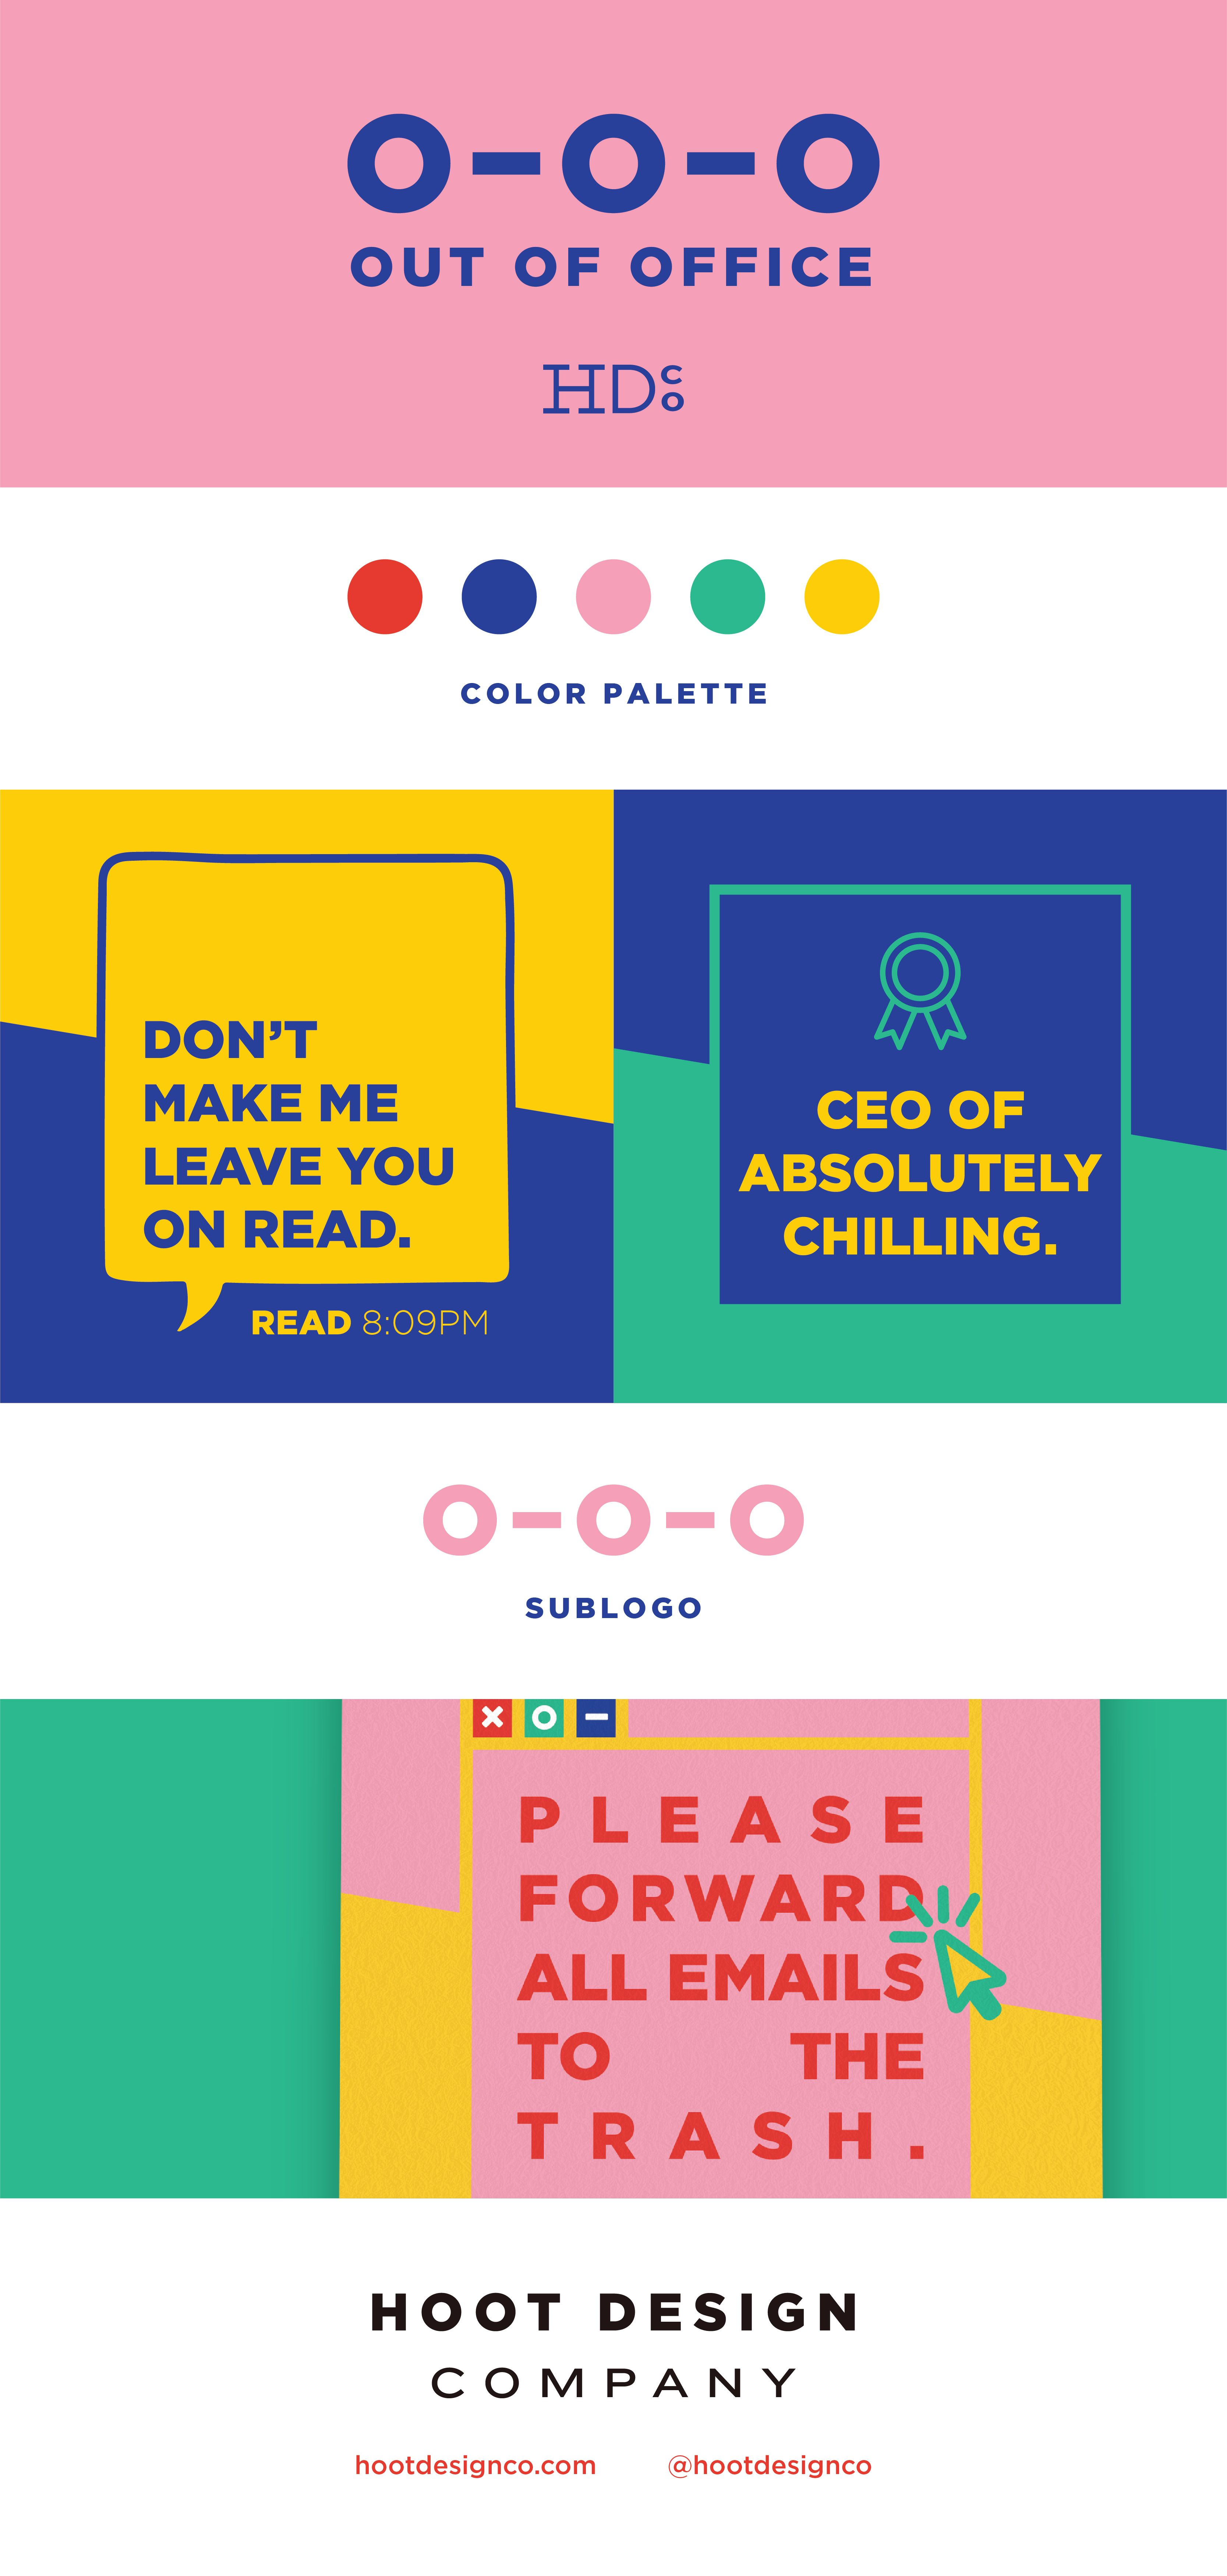 For our 2019 retreat, we went all out on taking a look inward. As a branding agency, of course we needed a brand to show how serious we were. Since we would be tapping into our foundational values, we took this color palette back to bright basics and sprinkled in some badass copy. We have a brand that makes us excited to clock out and lets all of our clients know that this Friday is for the gals.